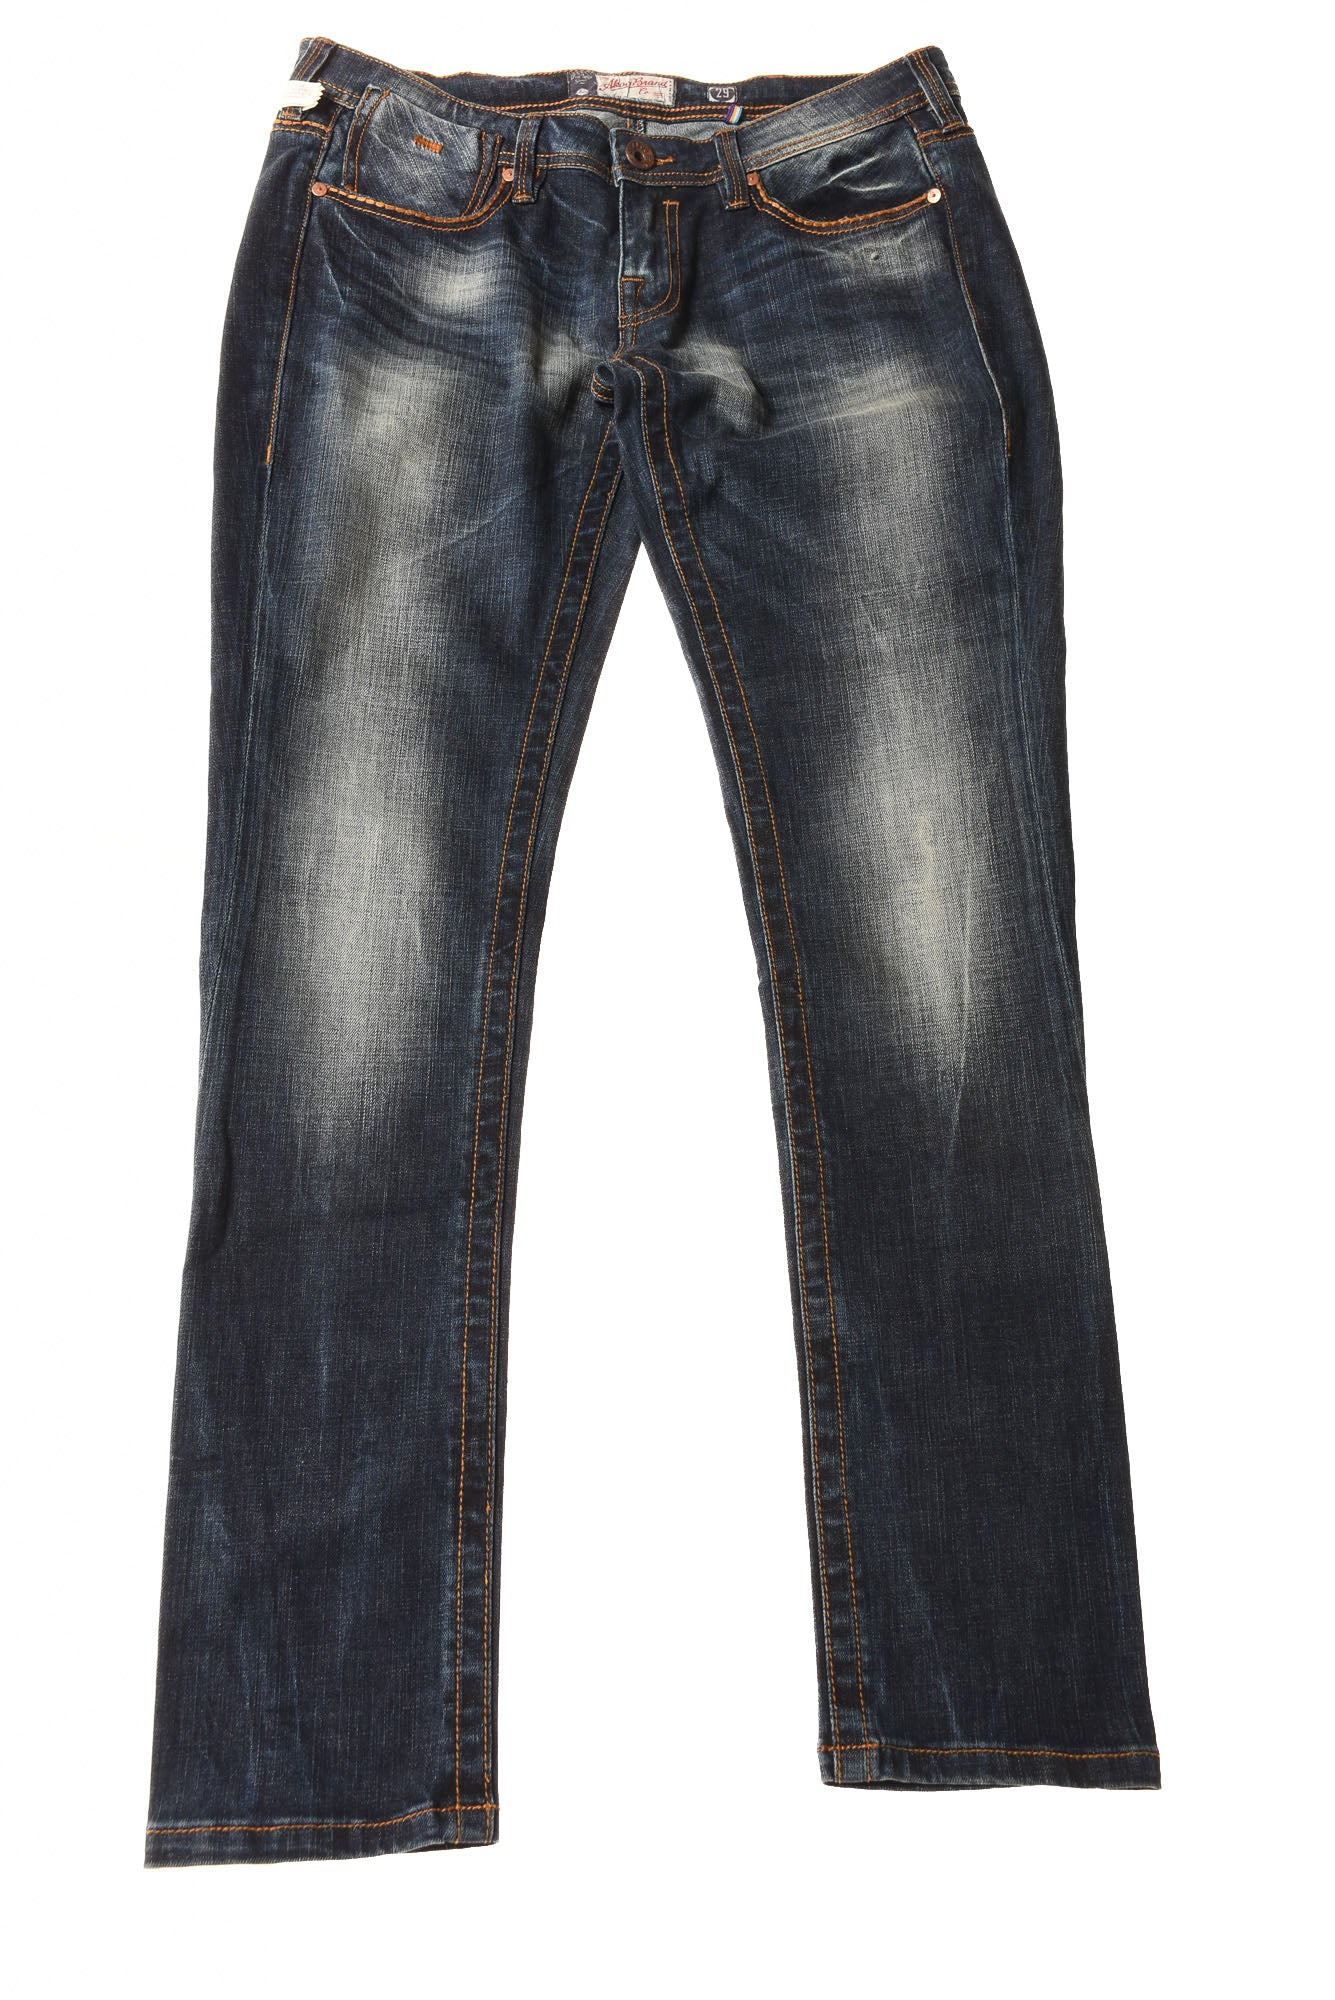 13fc146d7ed USED Akoo Brand Men s Jeans 29x31 Blue - Village Discount Outlet